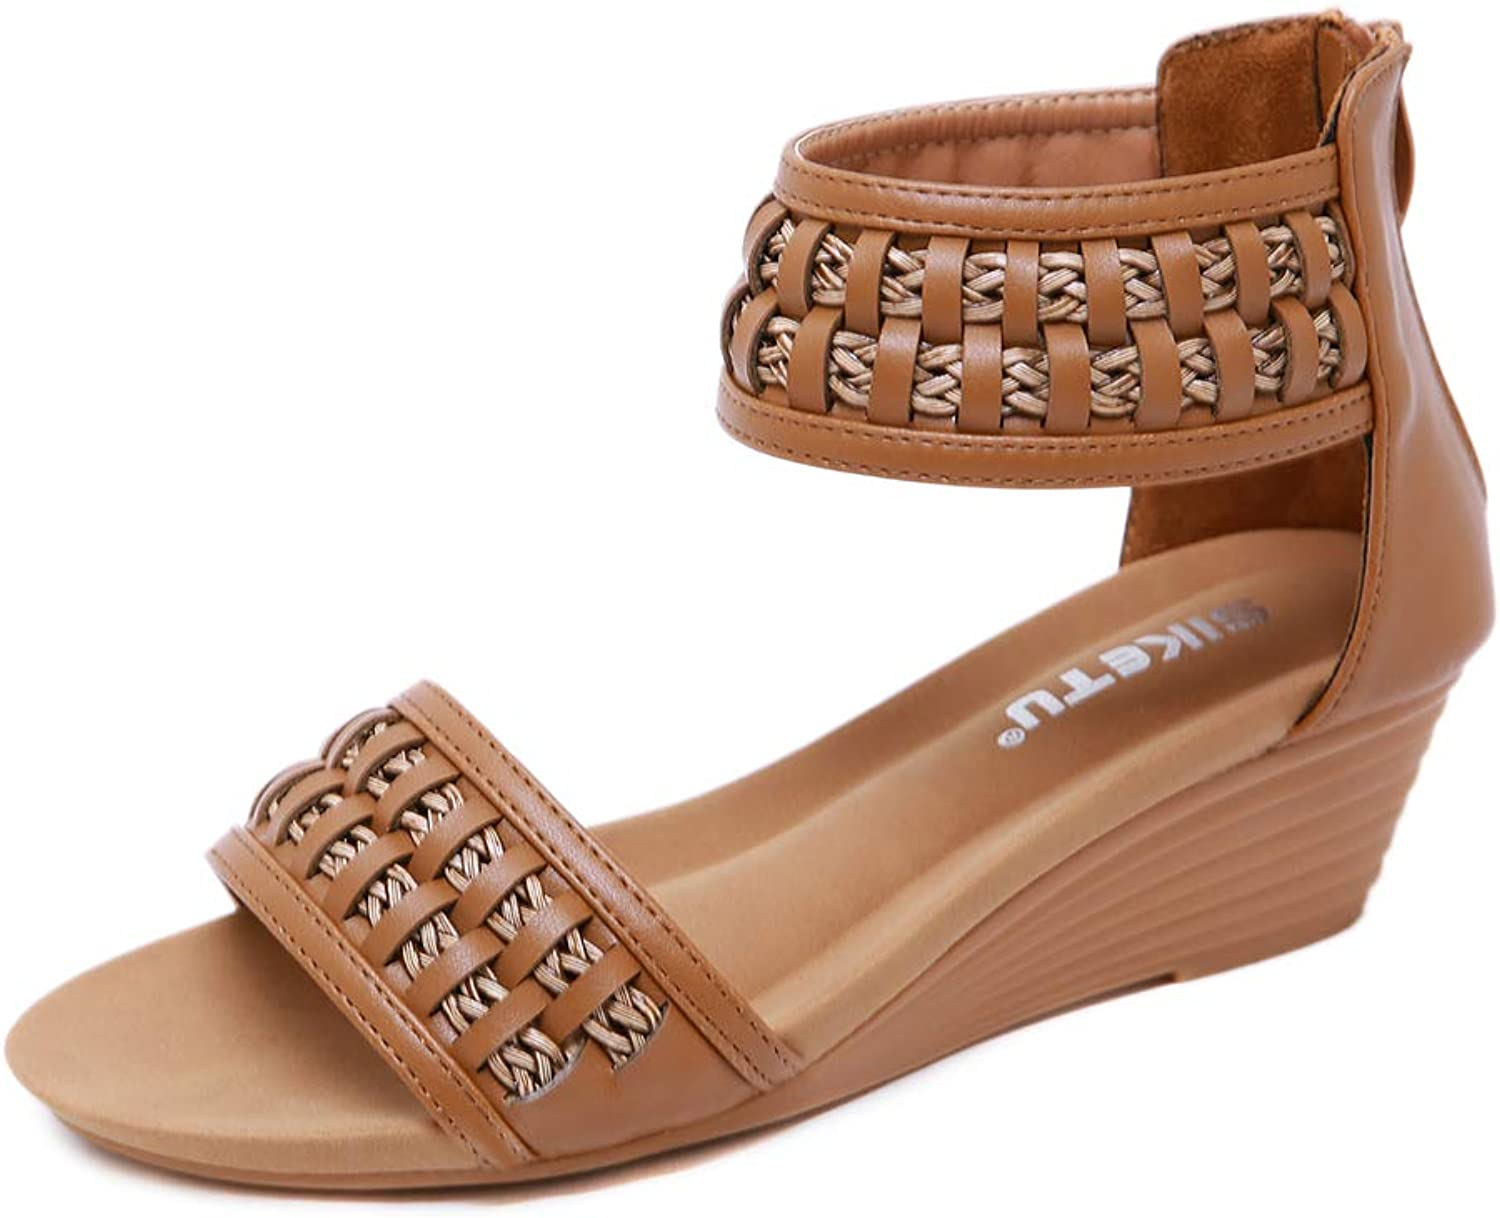 AGOWOO Gladiator Wedge Sandals for Women Fashion Weave Zipper Strap Sandles